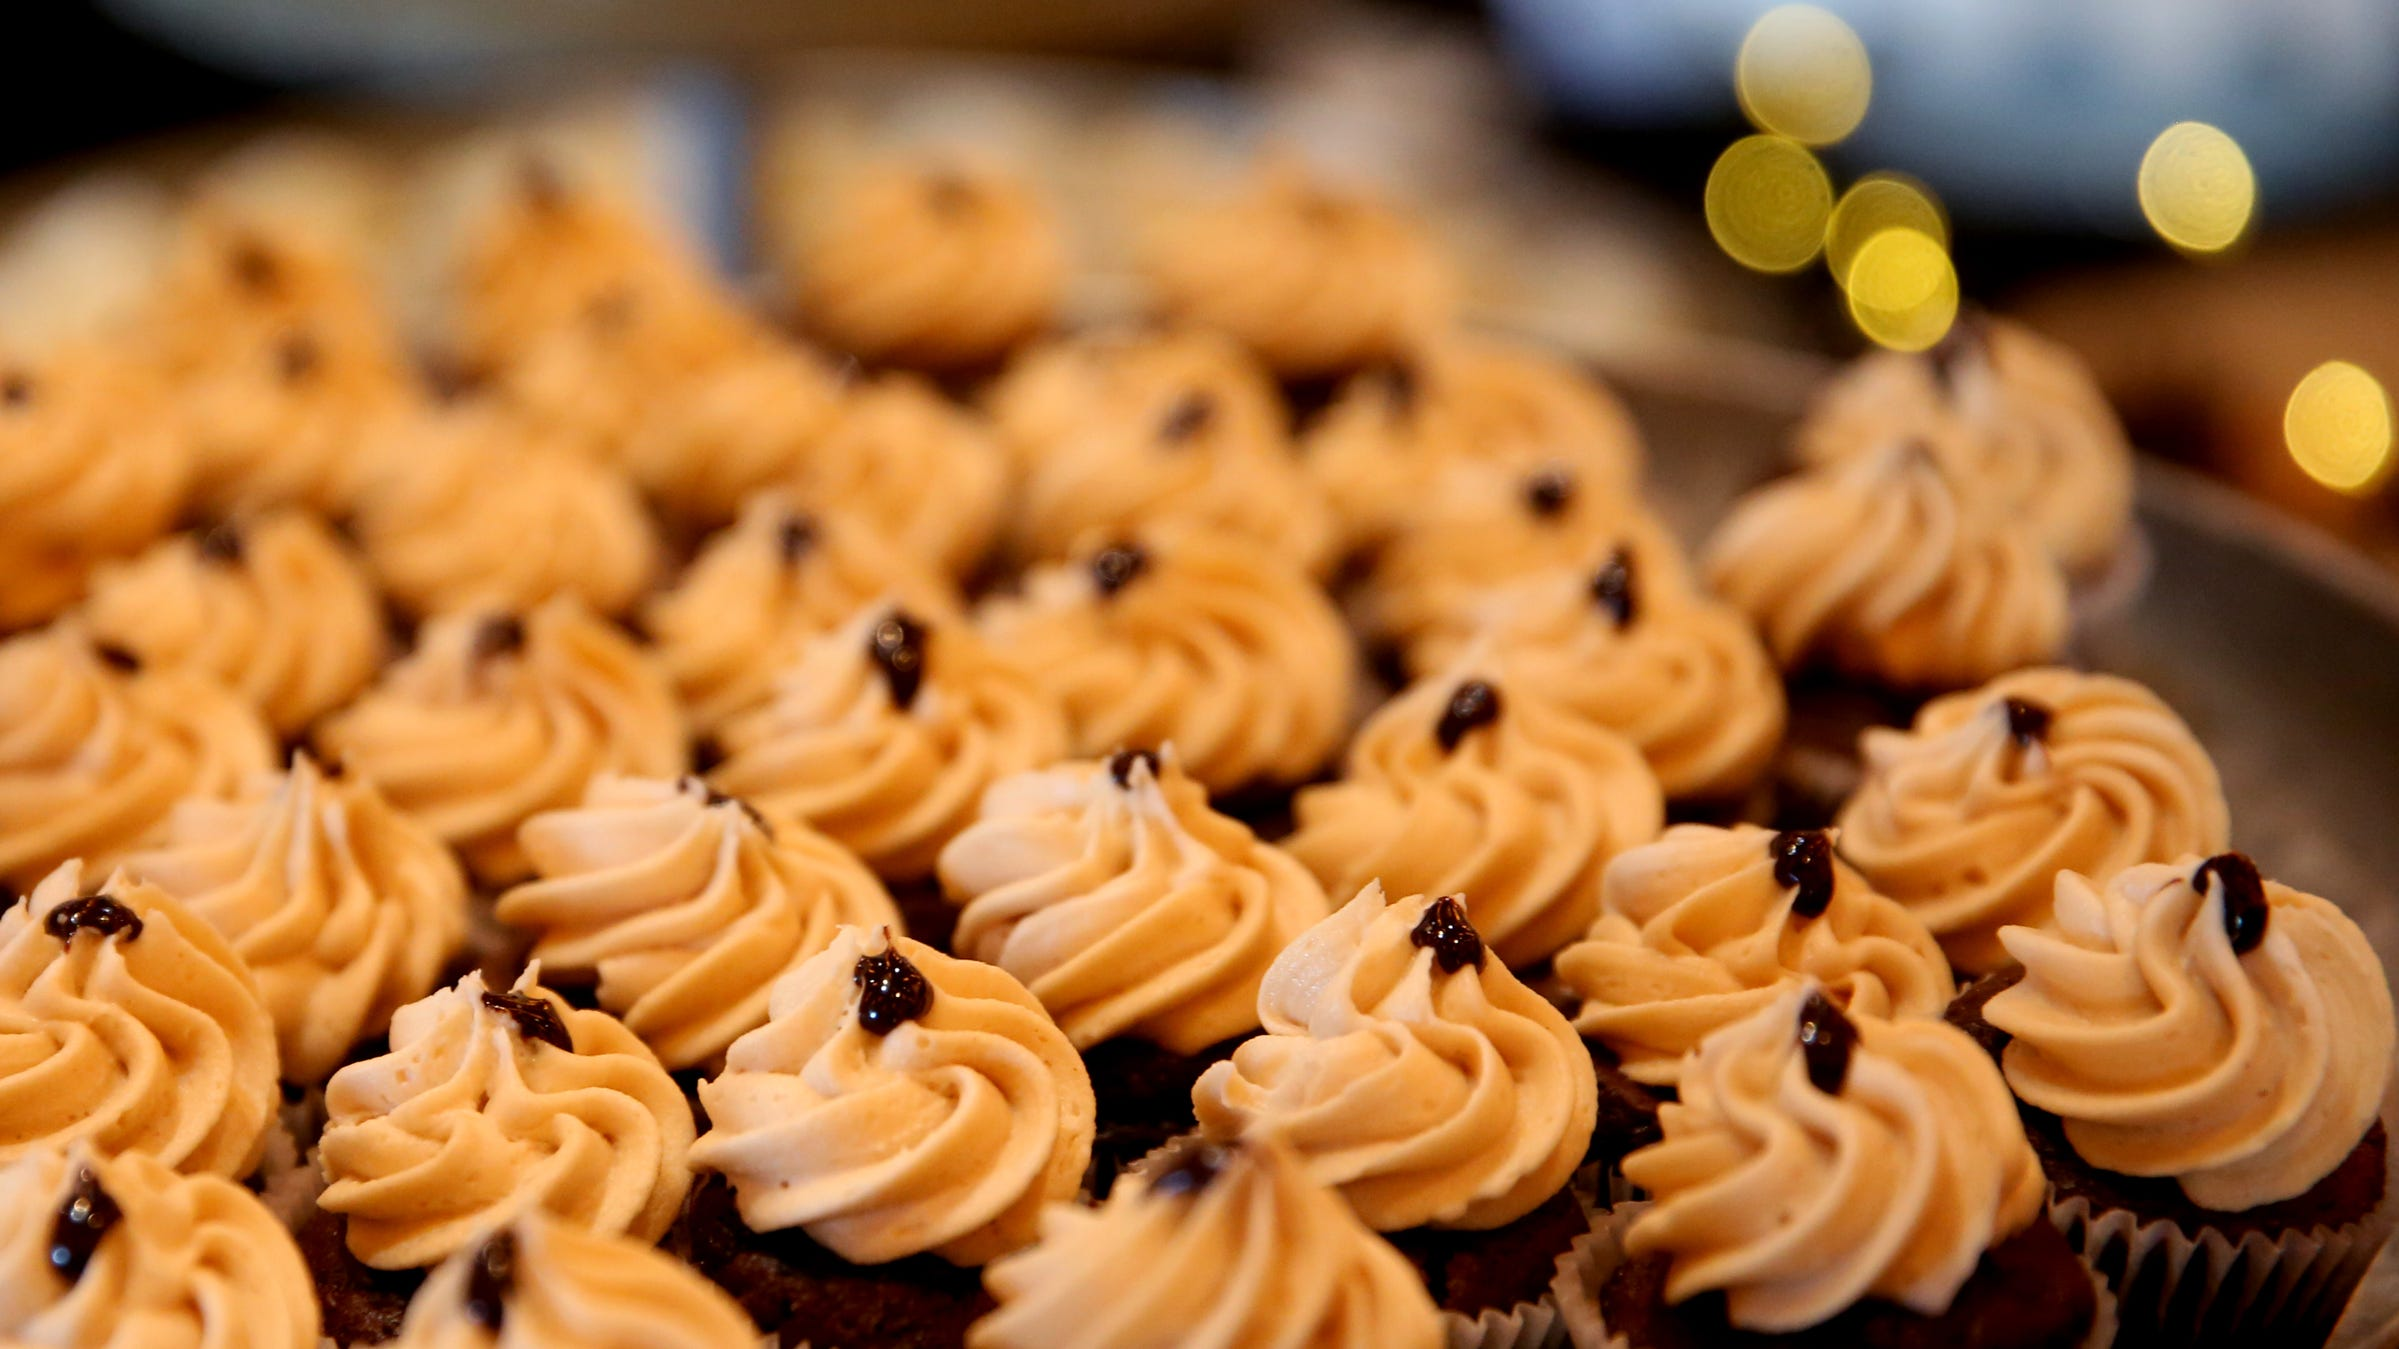 Chocolate cupcakes topped with peanut butter buttercream are offered by Sweetly Baked during the 20th annual Chef's Nite Out, a fundraiser benefiting the Marion-Polk Food Share, at the Salem Convention Center on Sunday, Oct. 14, 2018.